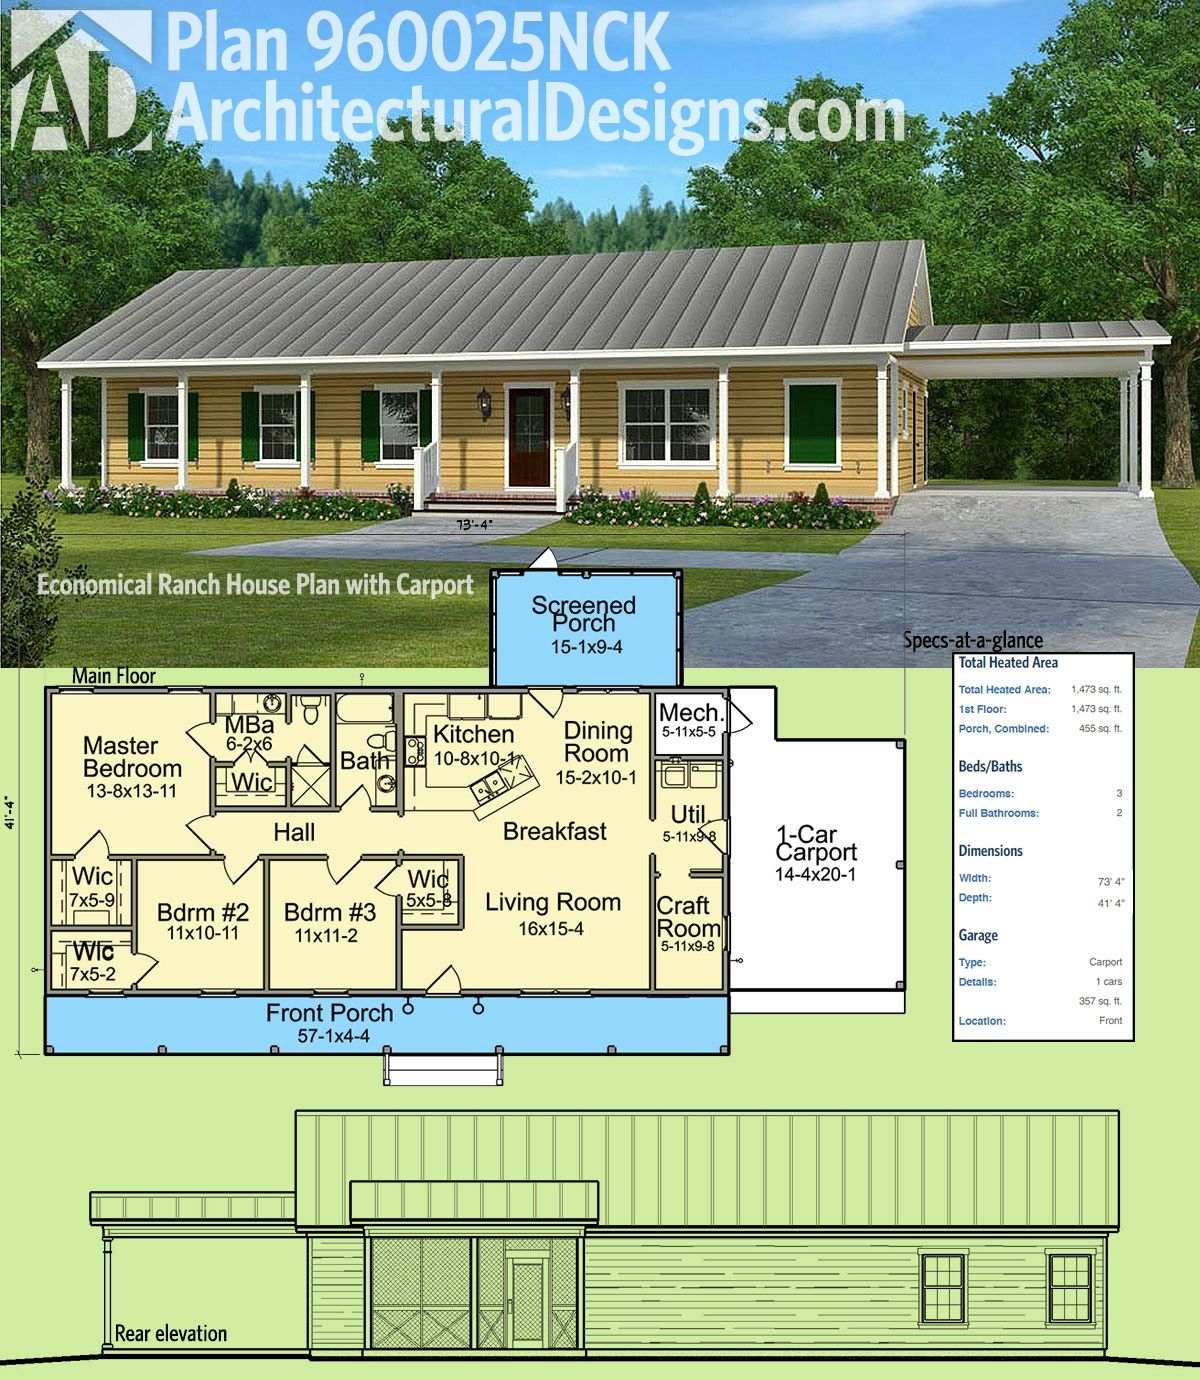 Architectural Designs Simple House Plan 960025nck Is A Singlestory Countrystyle  Ranch With